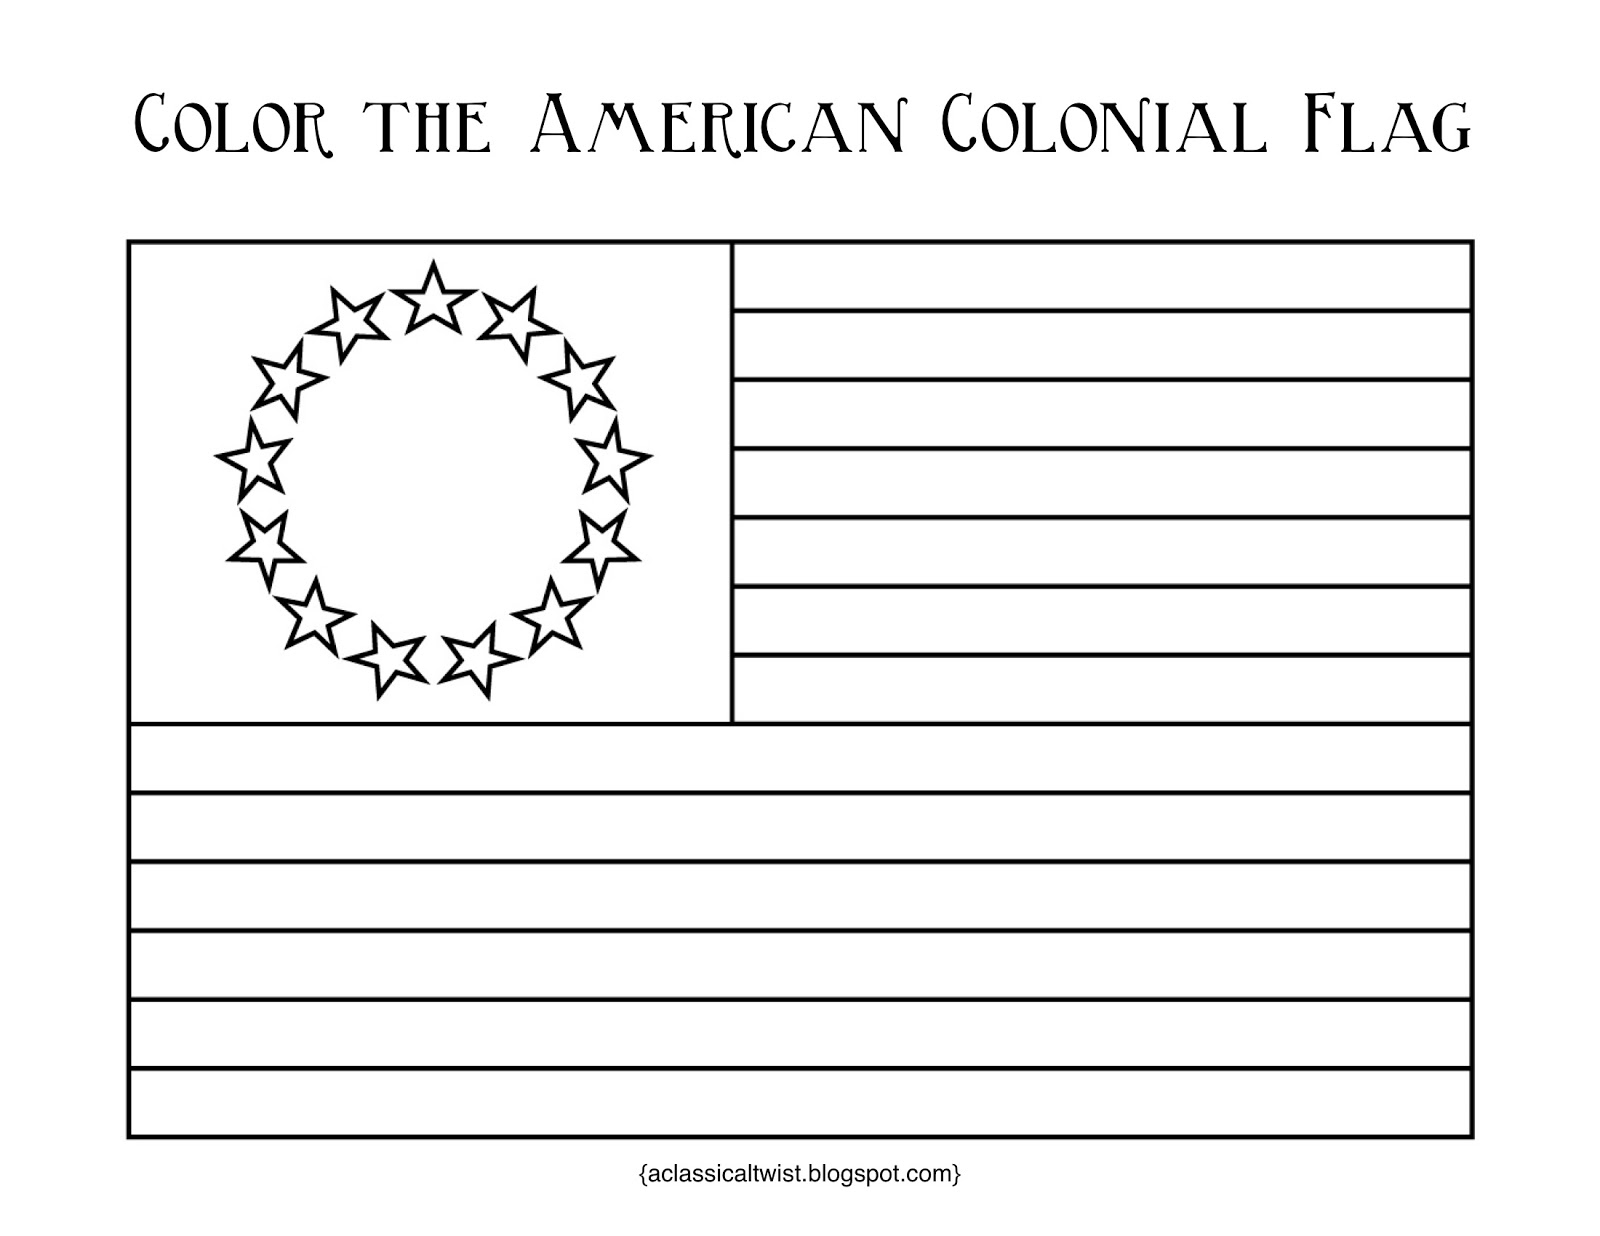 Printables 13 Colonies Worksheet homeschooling with a classical twist original 13 colonies and colonial flag printable